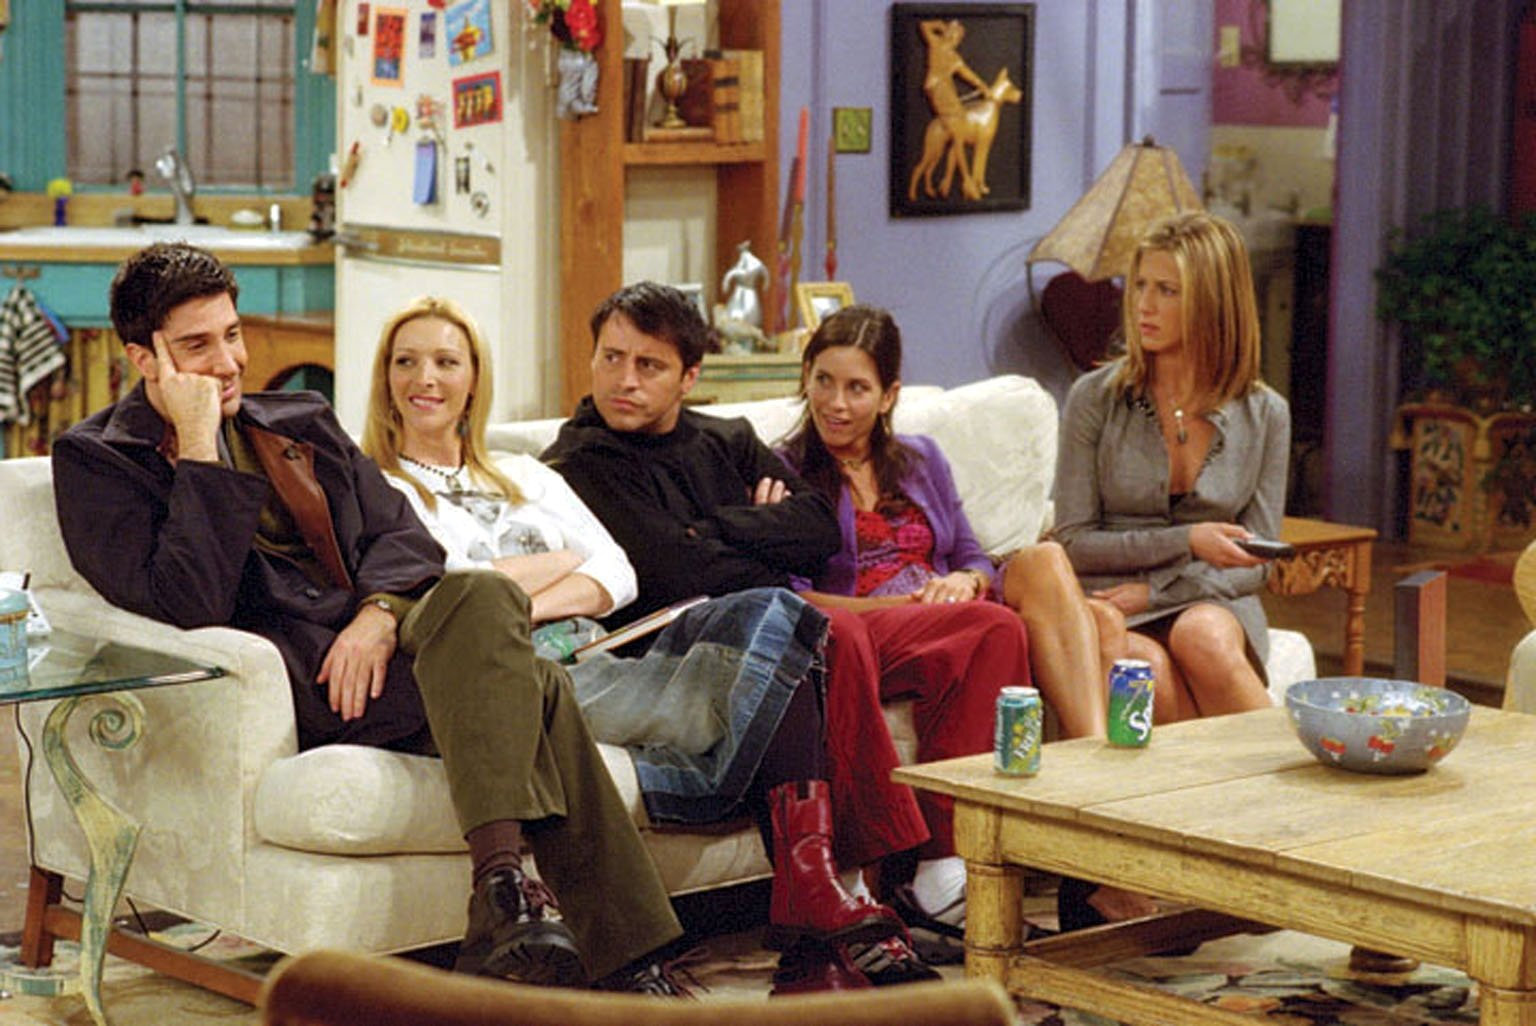 POPULAR: TV show Friends which ran for 10 seasons